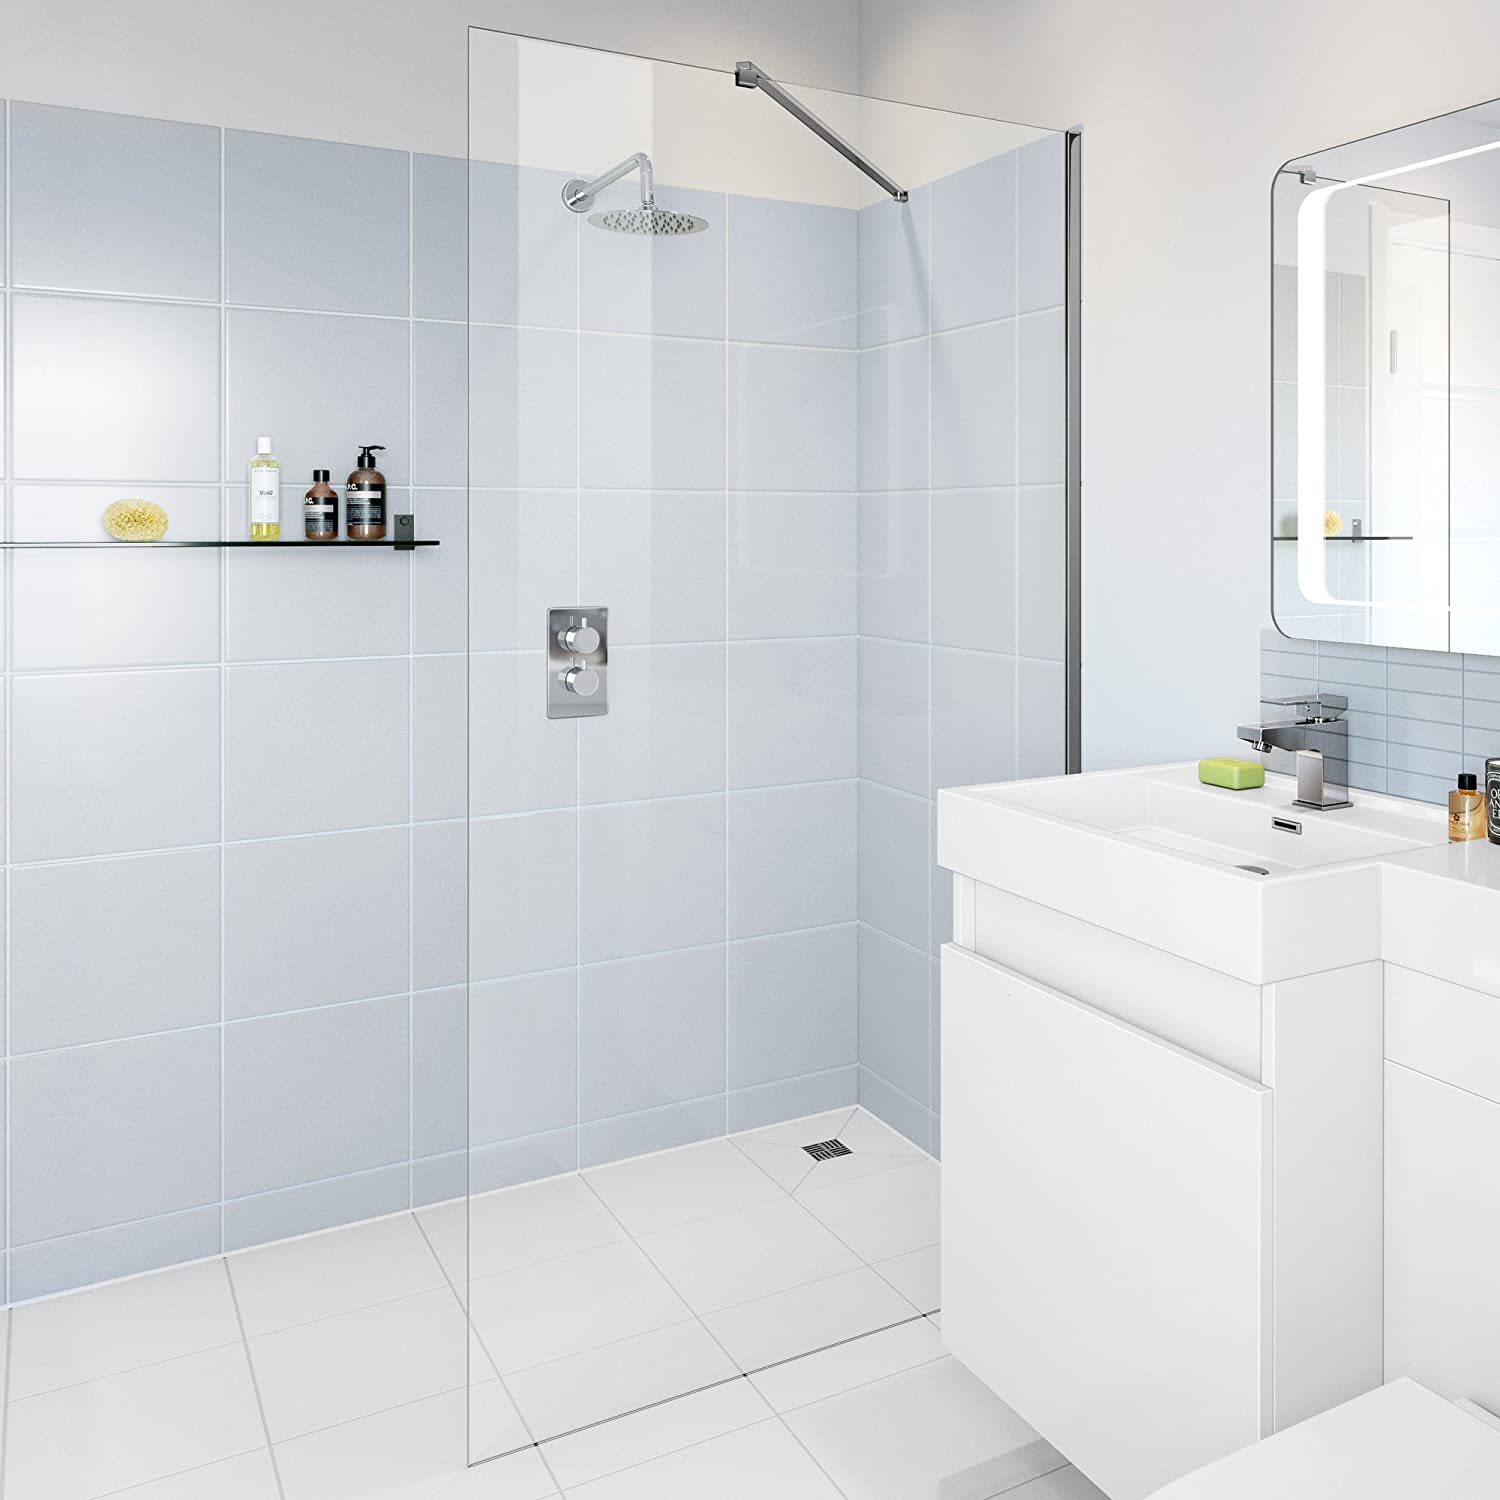 iBathUK 700mm Wet Room Glass Walk In 8mm Shower Screen Panel ...